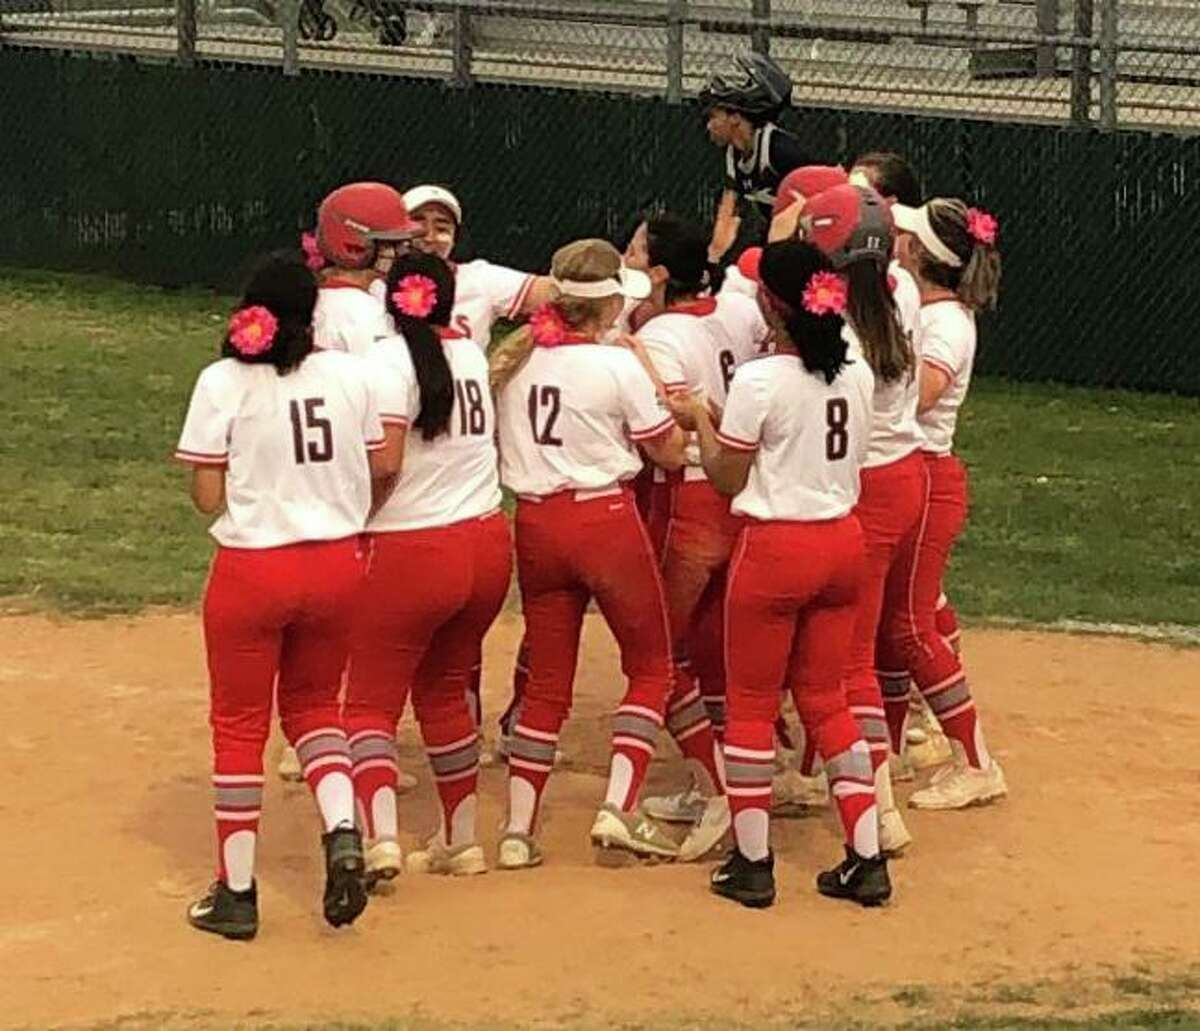 Travis softball players greet teammate Ariel Kowalewski after a home run during the 2021 season. Kowalewski was voted District 20-6A MVP after batting .657 with 13 home runs in 21 games.